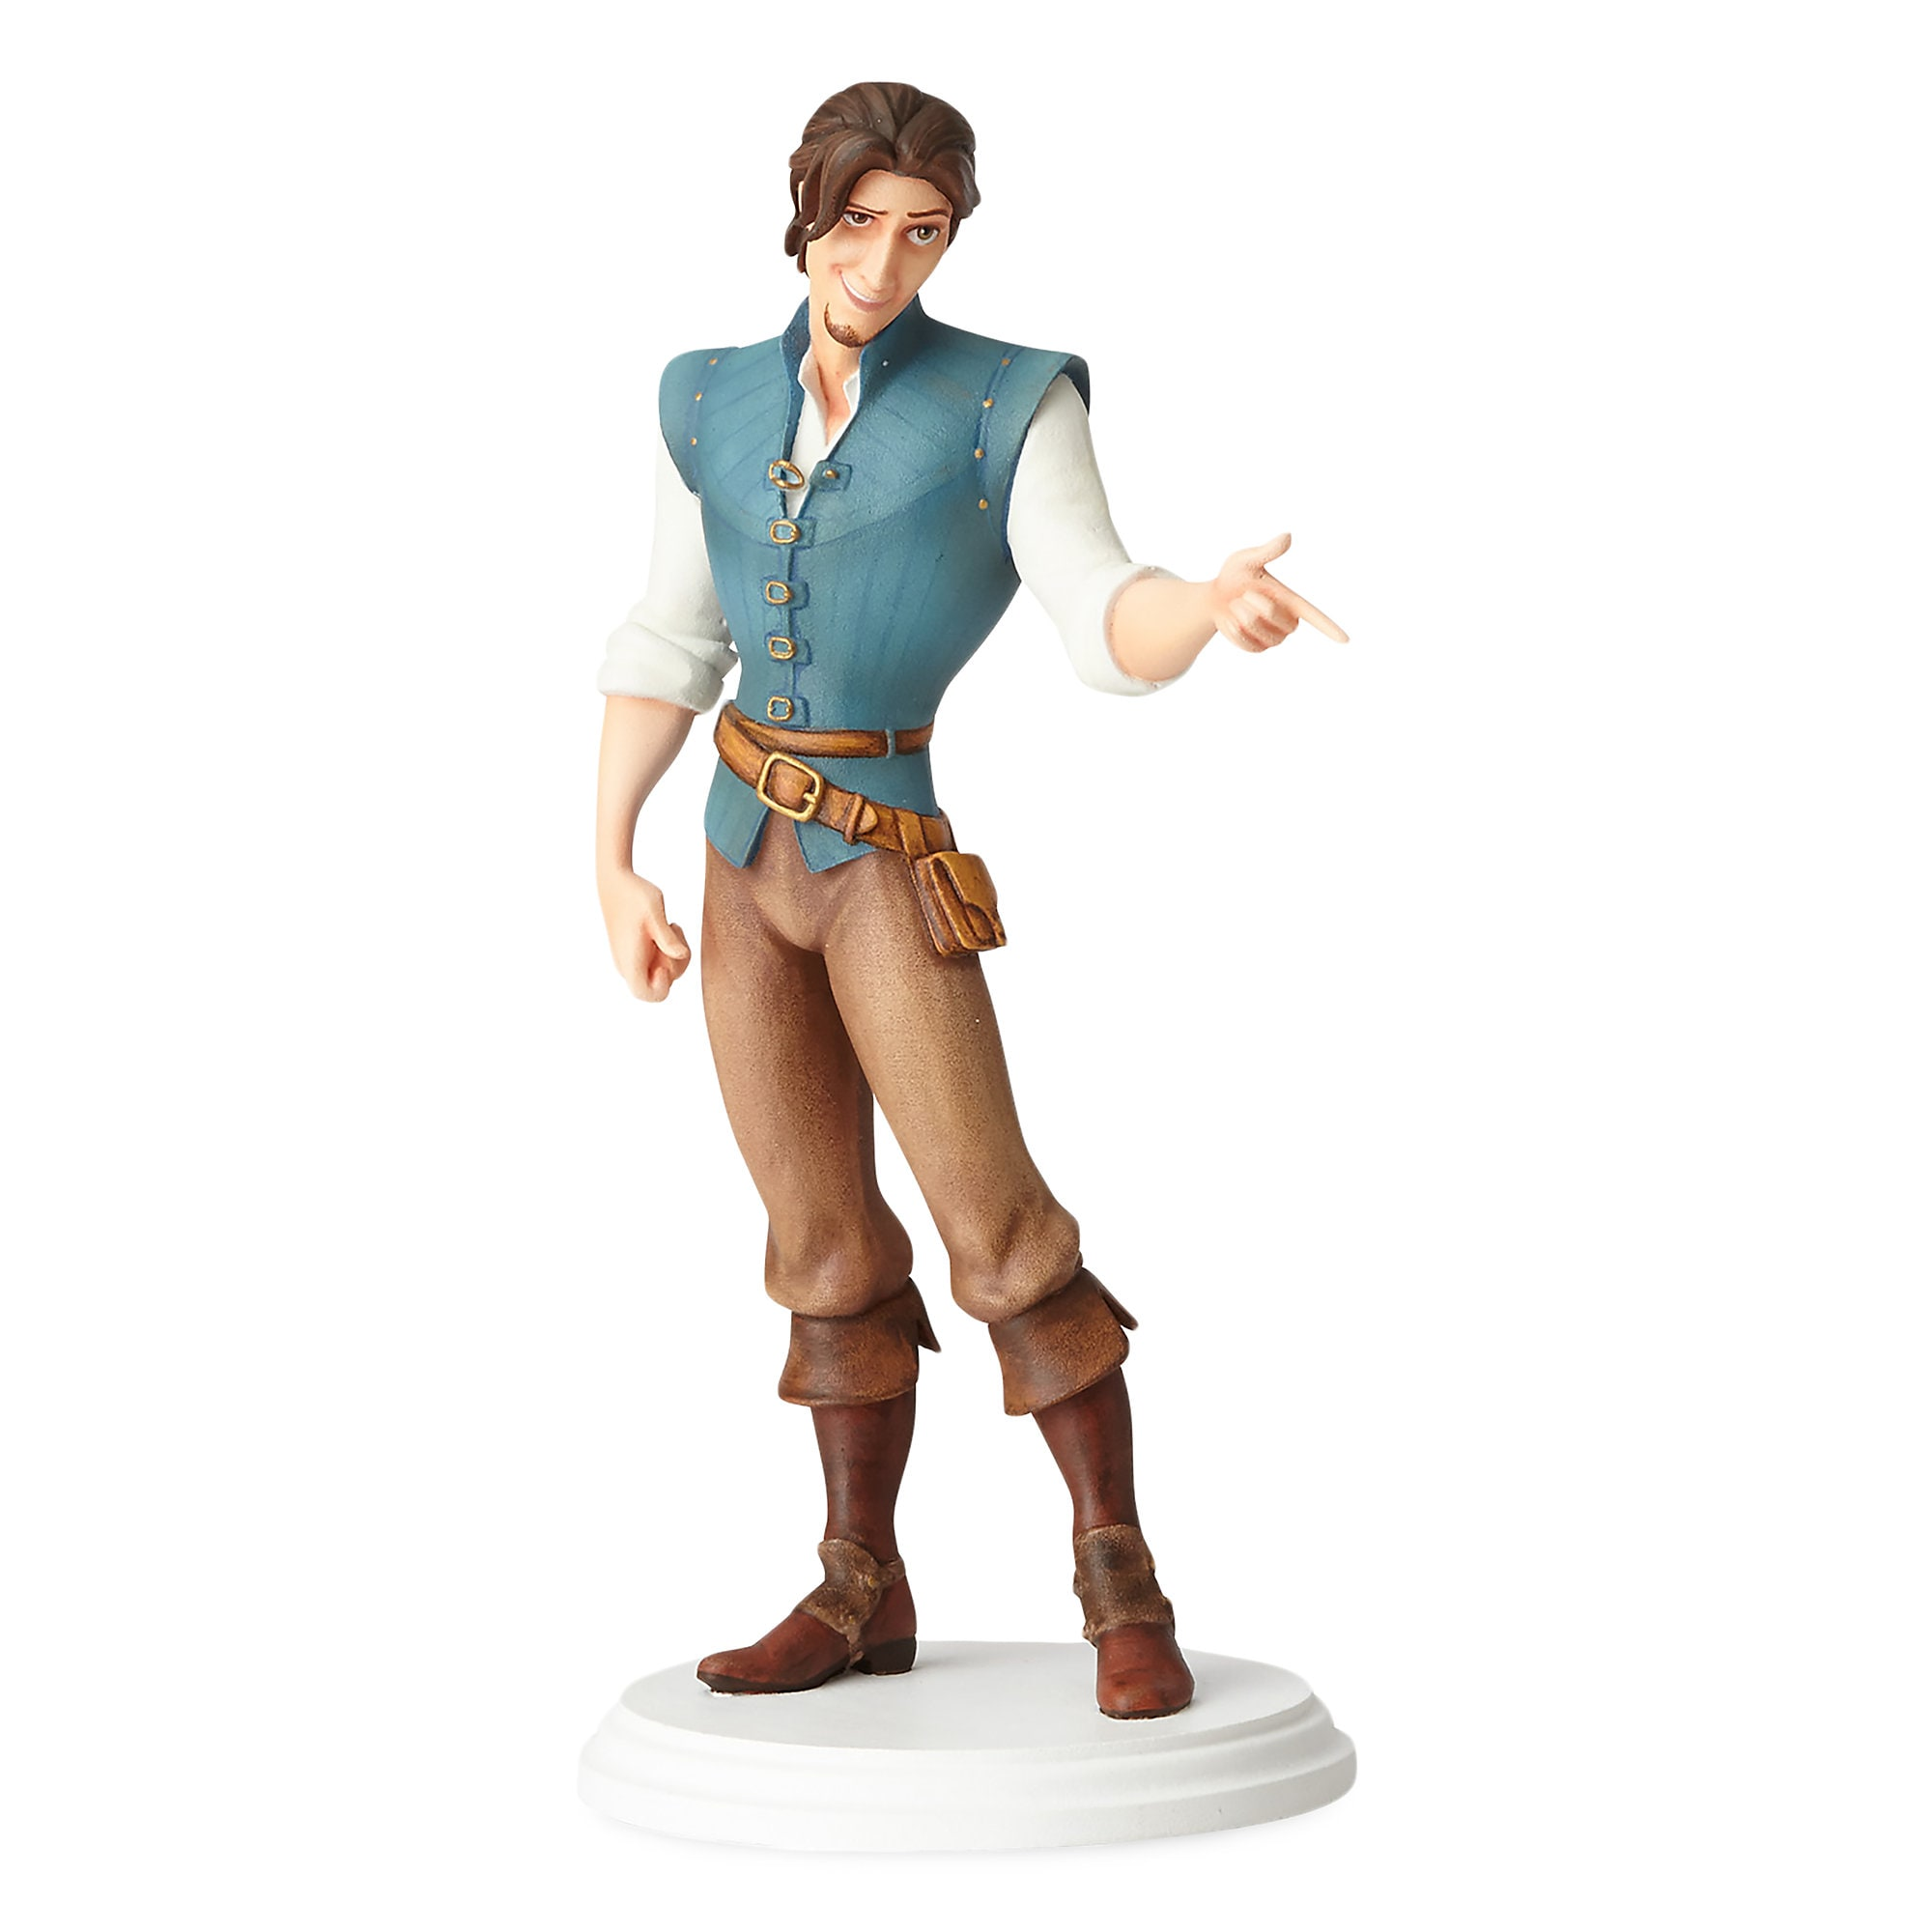 Flynn Rider Maquette - Walt Disney Archives Collection - Limited Edition